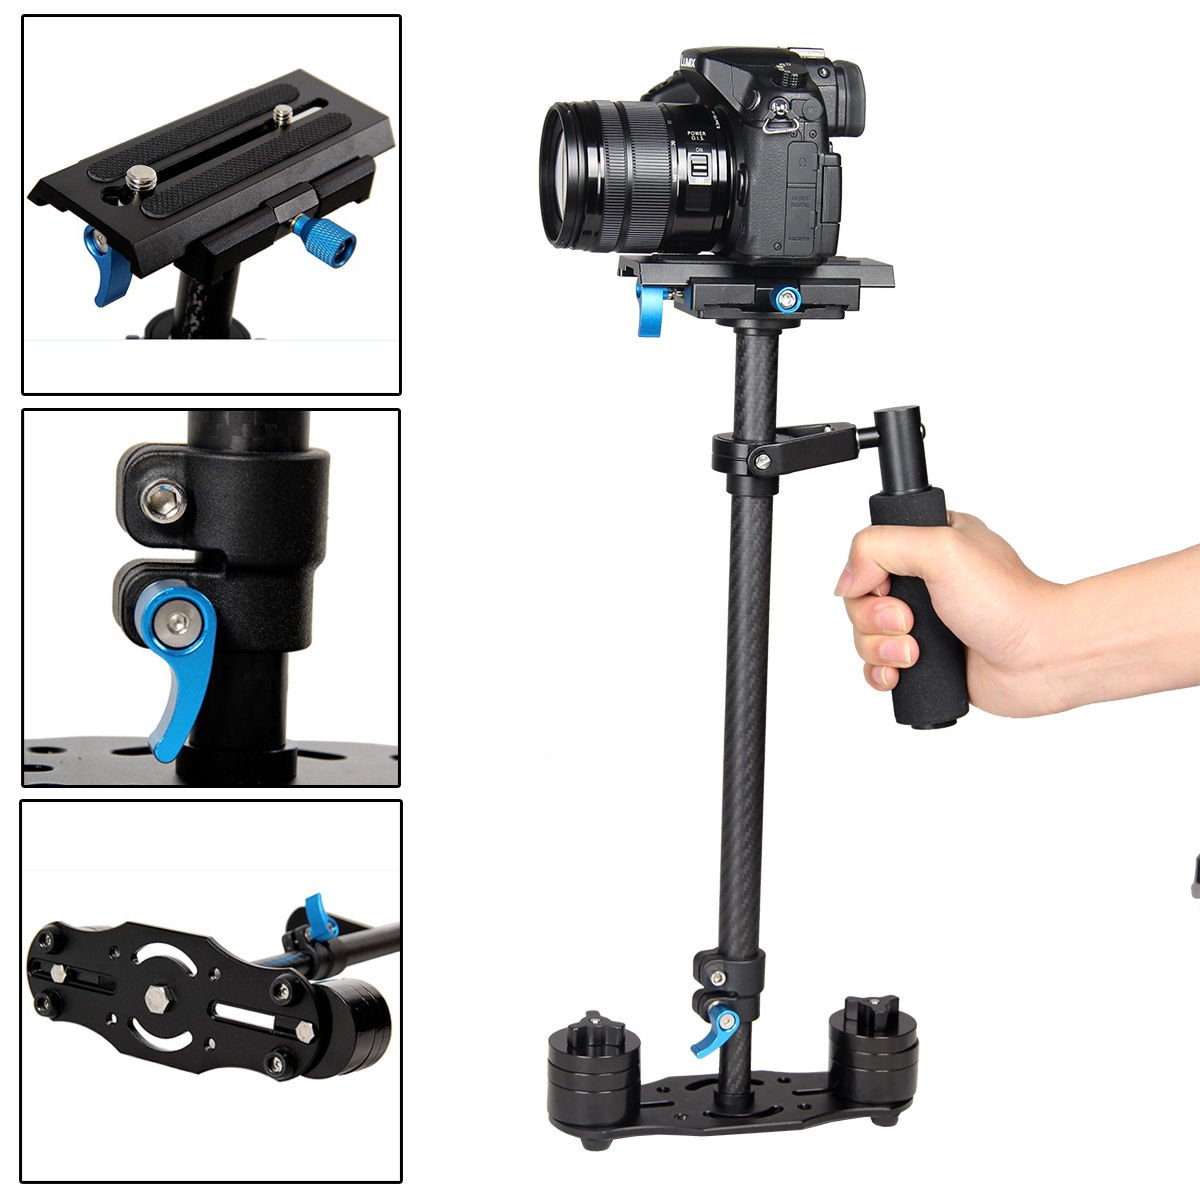 YaeCCC YELANGU S60T Carbon Fiber 24''/60cm Handheld Stabilizer with Quick Release Plate 1/4 and 3/8 Screw for DSLR and Video Cameras up to 0.5-3kg